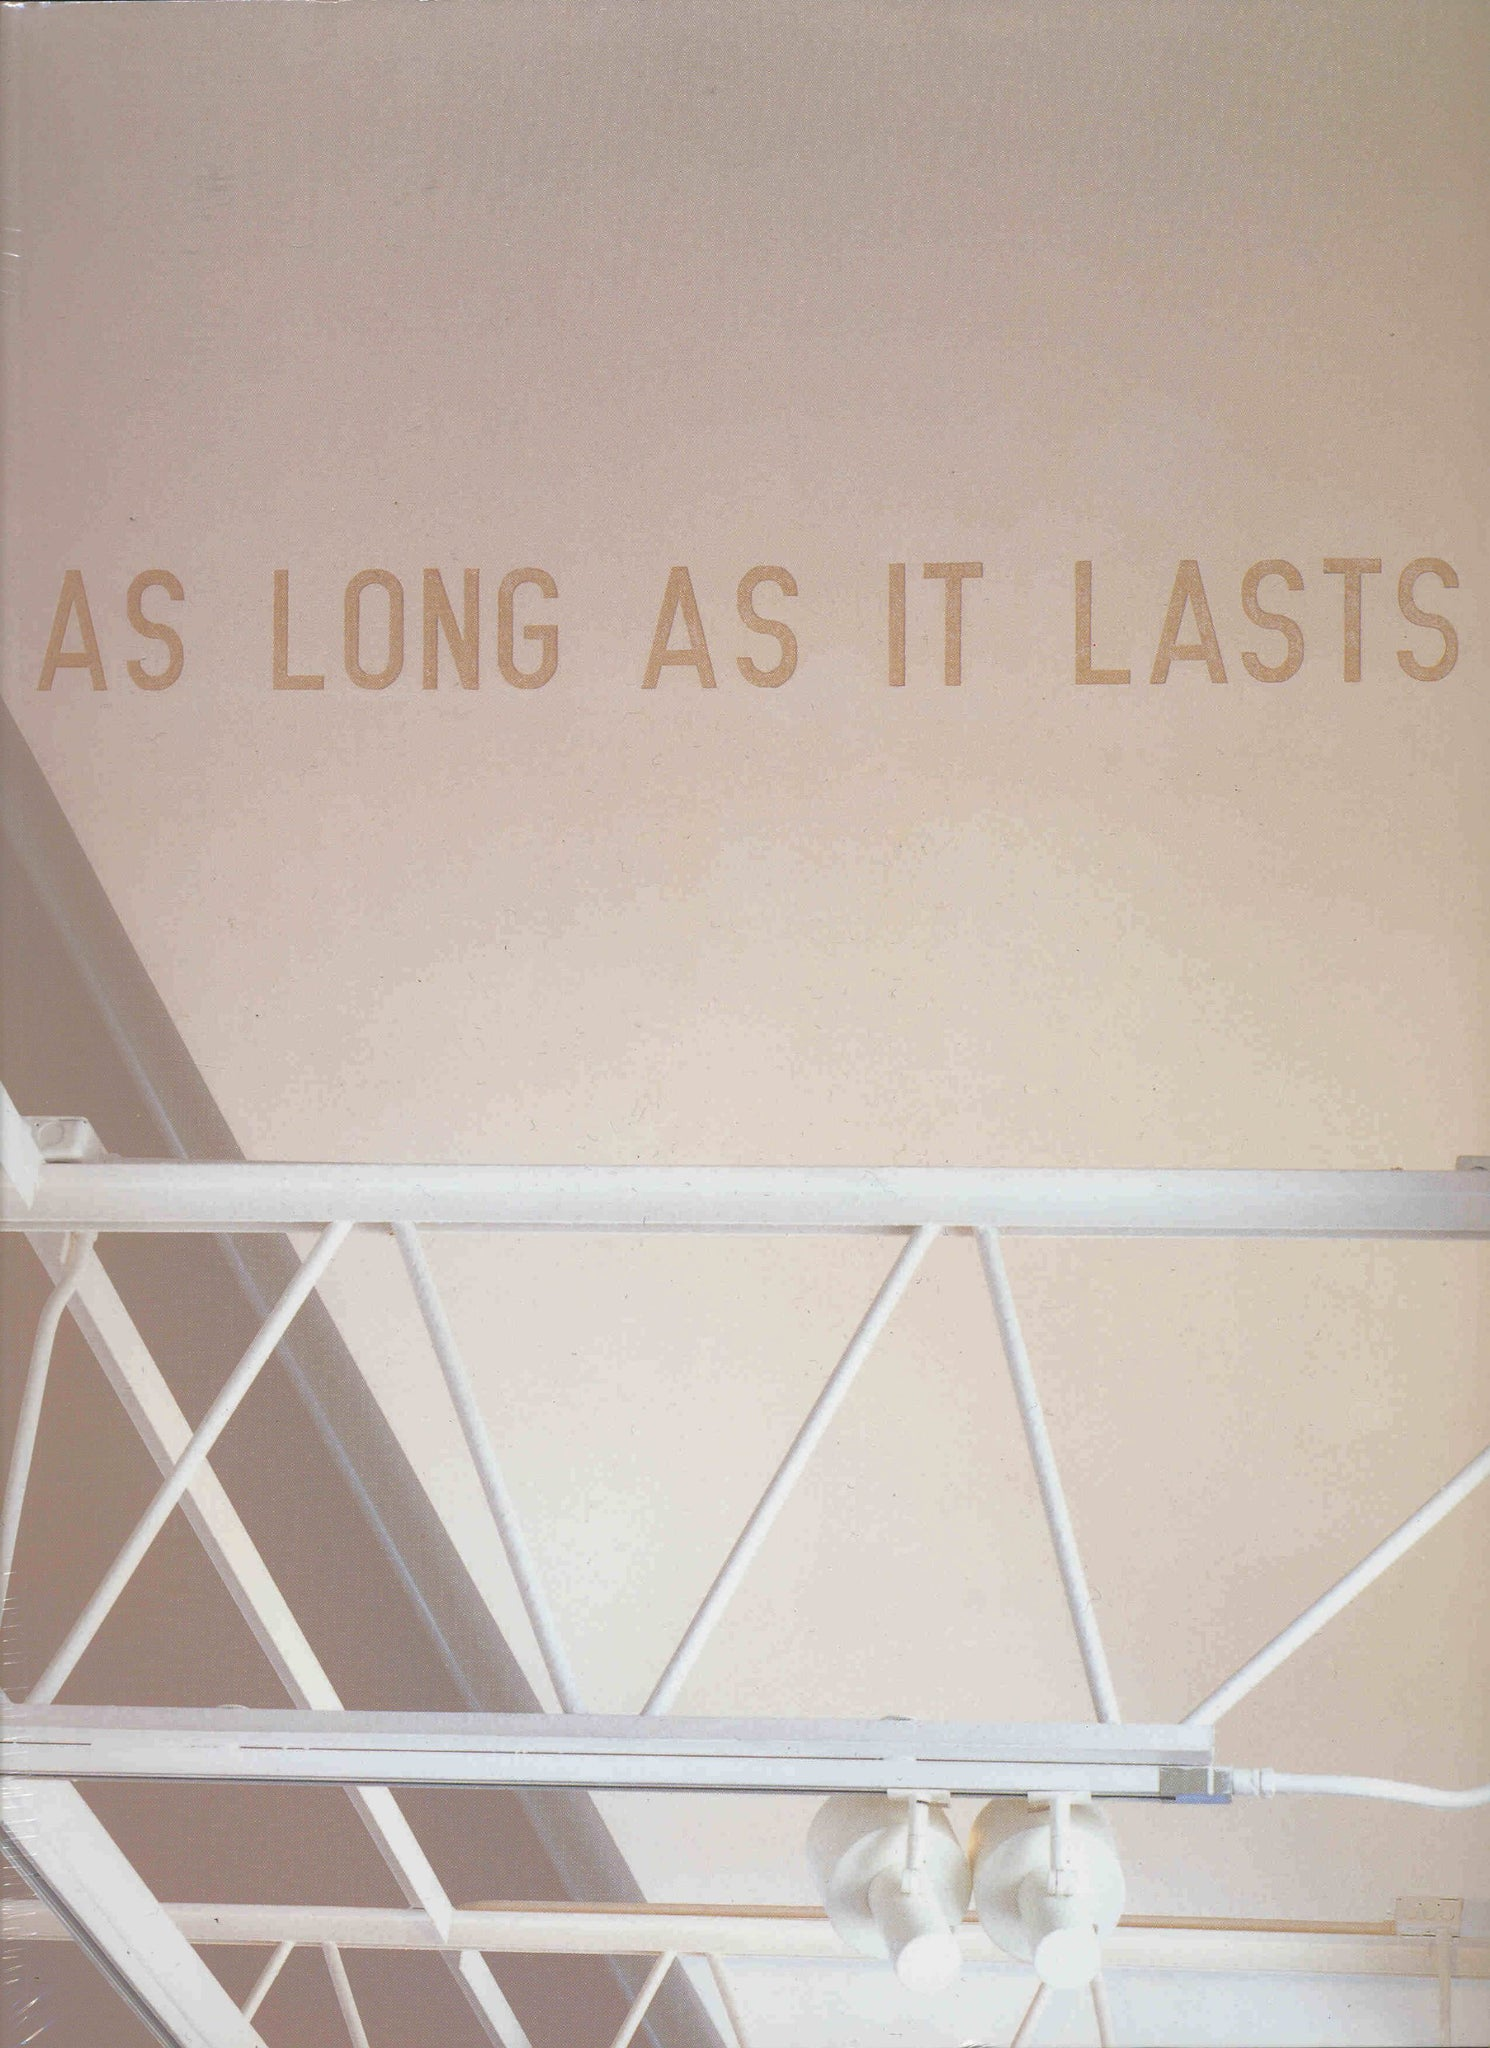 As long as it lasts: A History of the Renaissance Society, 1990-2001 - Book at Kavi Gupta Editions